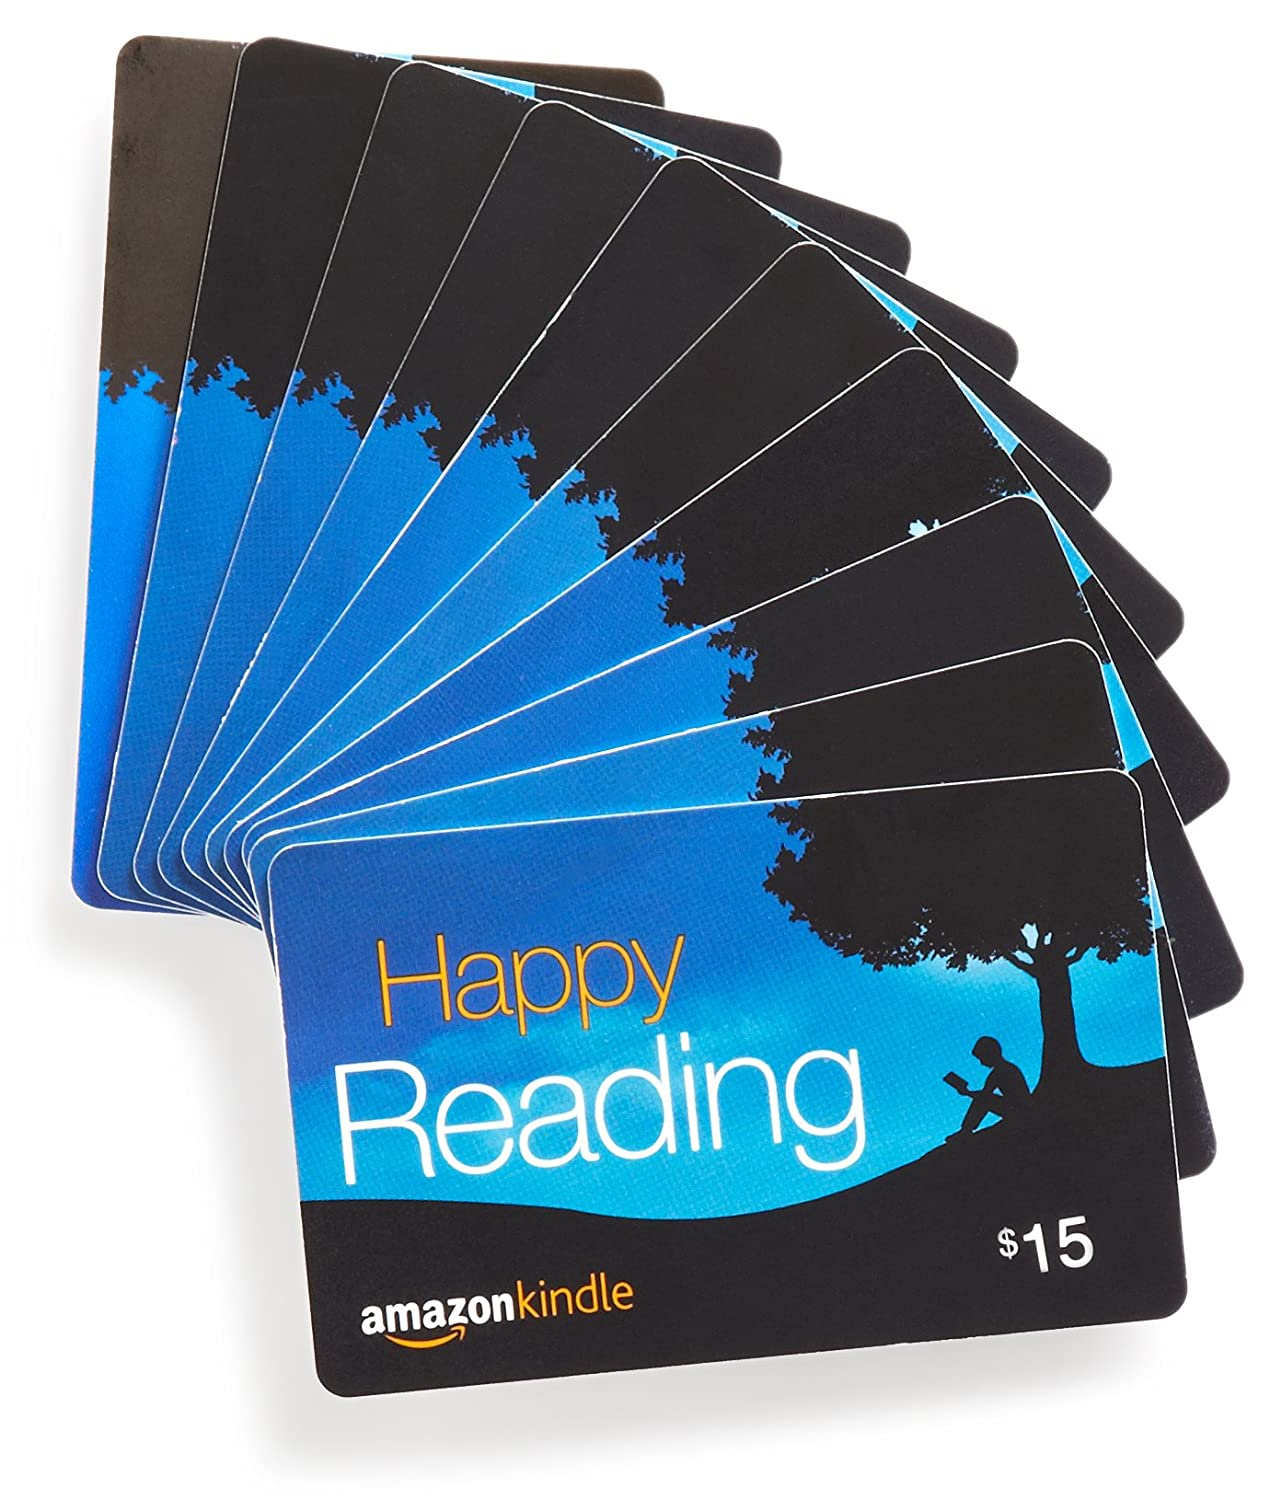 .com Gift Cards, Pack of 10 (Various Card Designs)